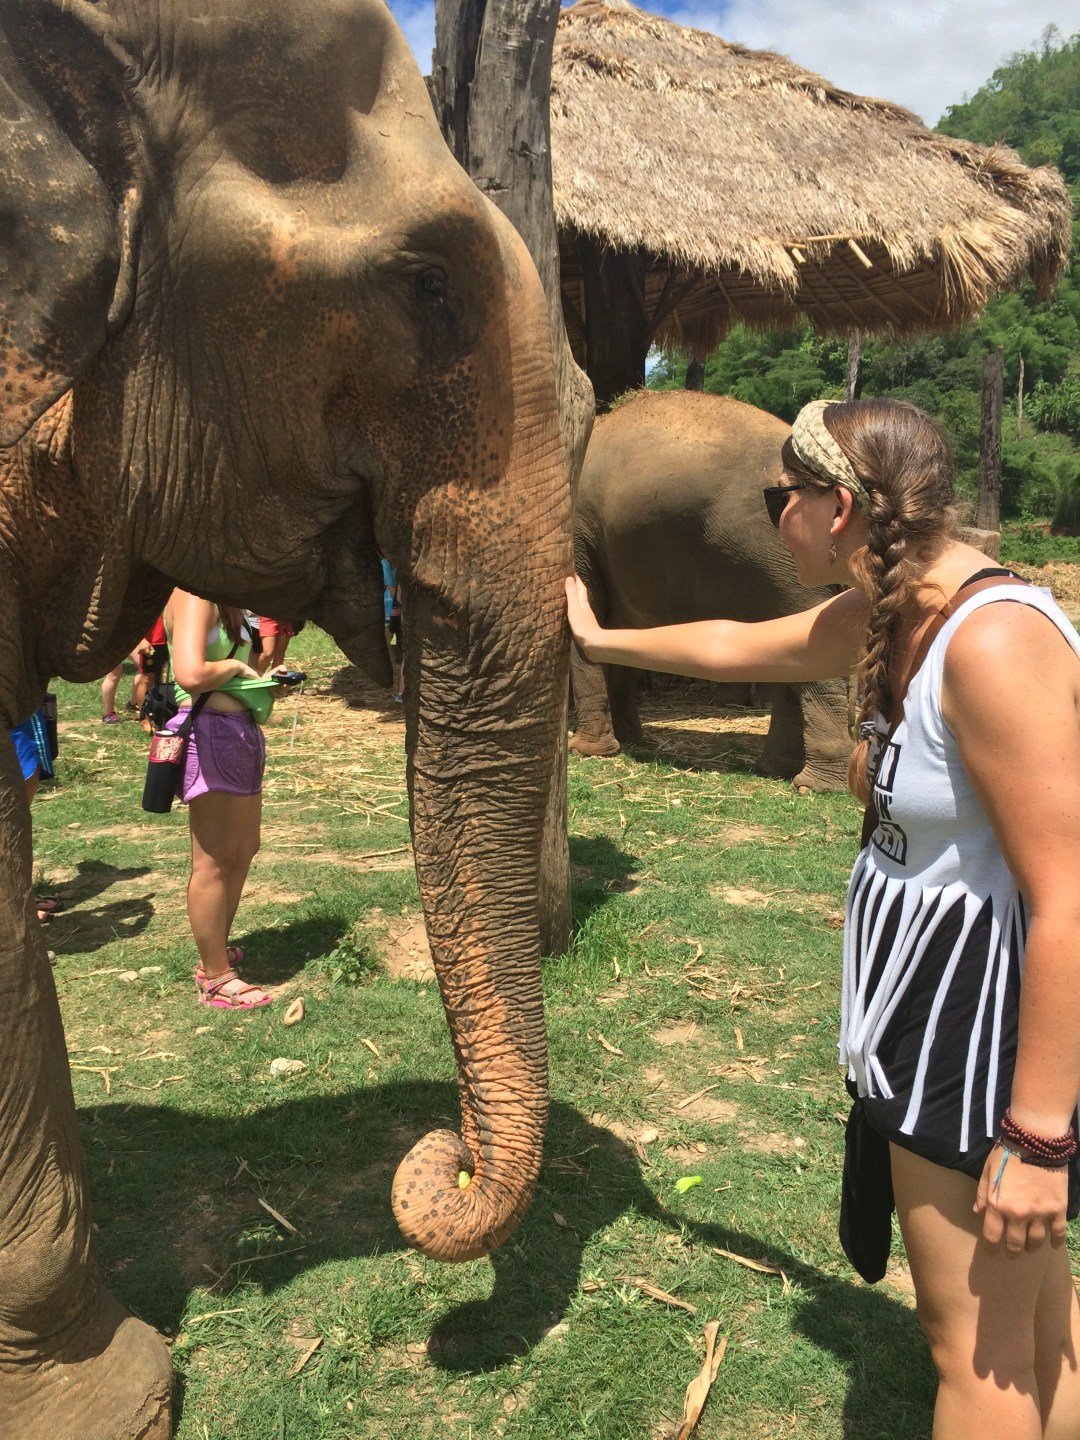 Petting elephants at the Elephant Nature Park